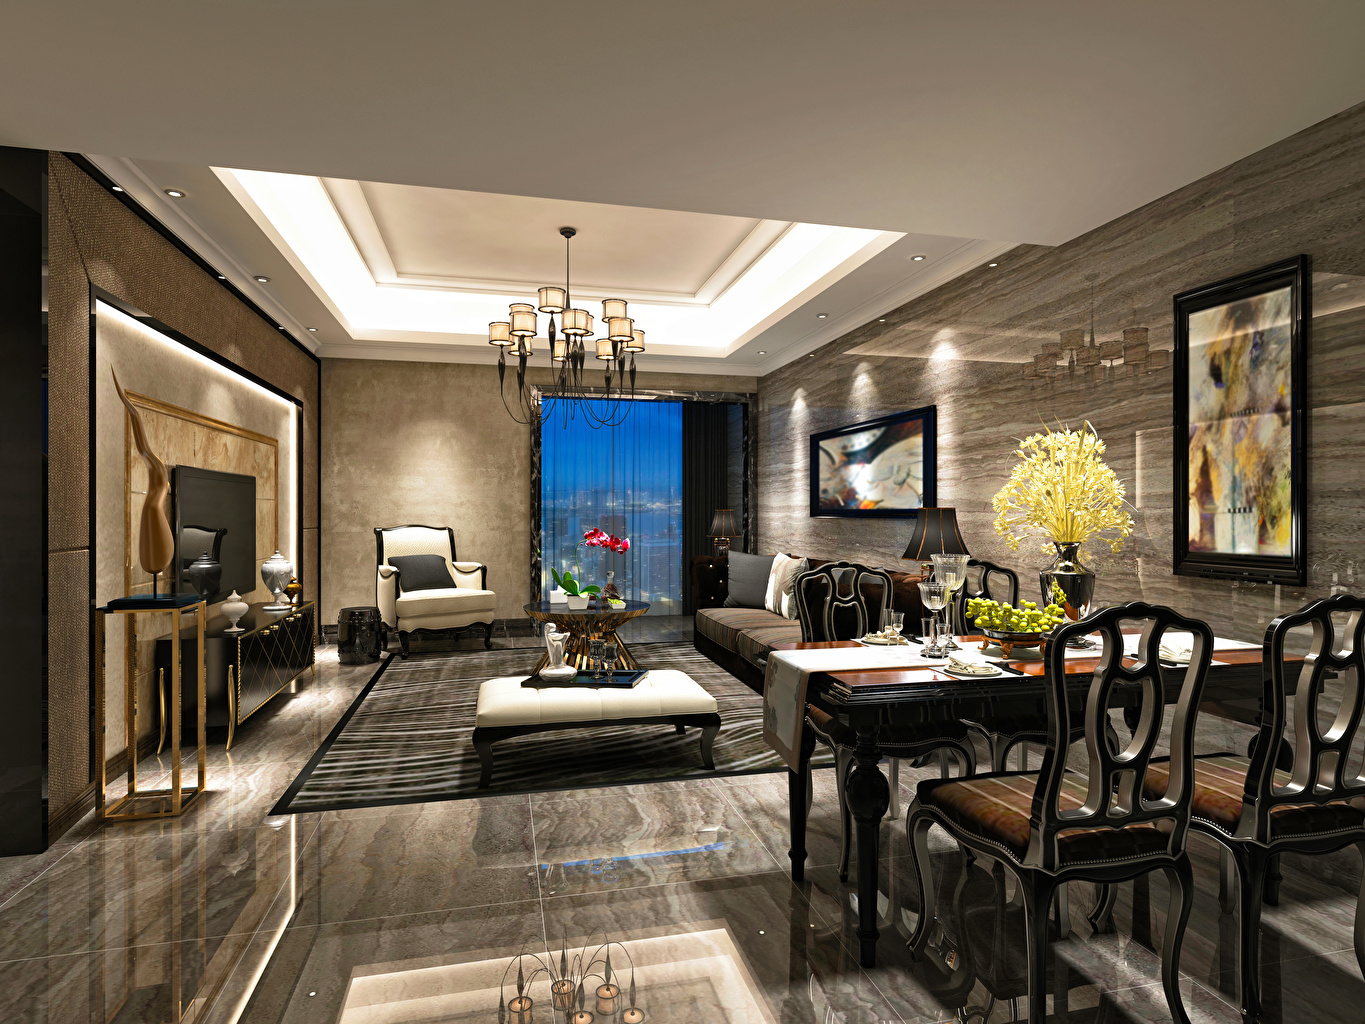 Desktop Wallpapers lounge sitting room 3D Graphics Interior Table Chairs Chandelier Design Living room Chair